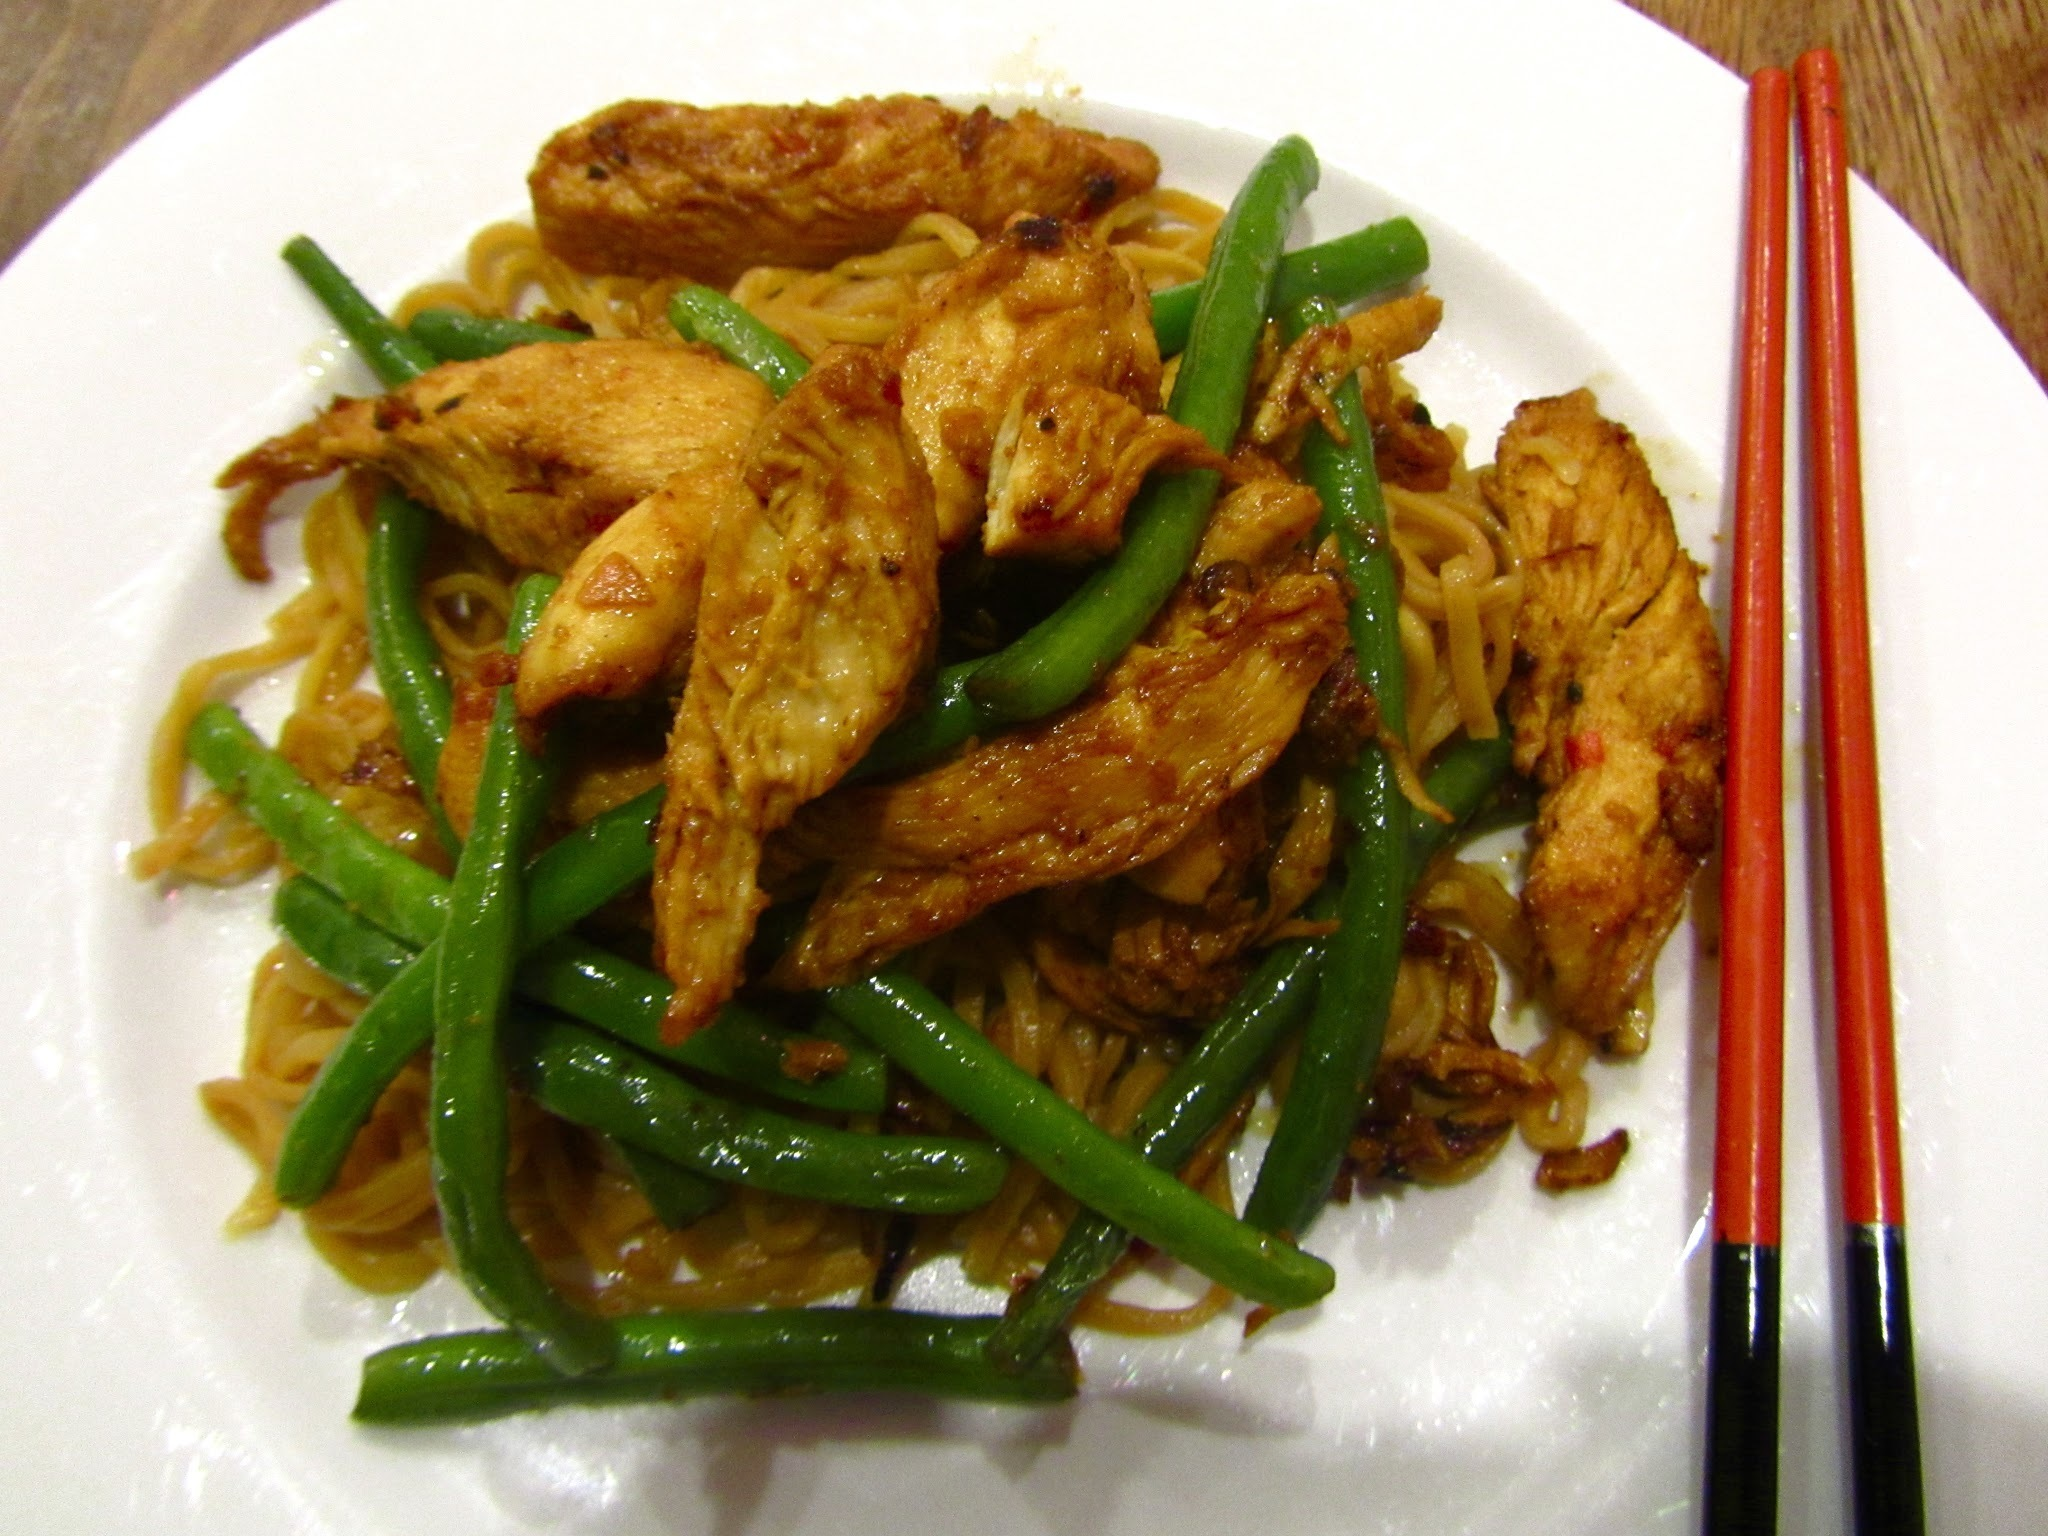 Stir fried chicken with ginger, chilli, garlic and lime